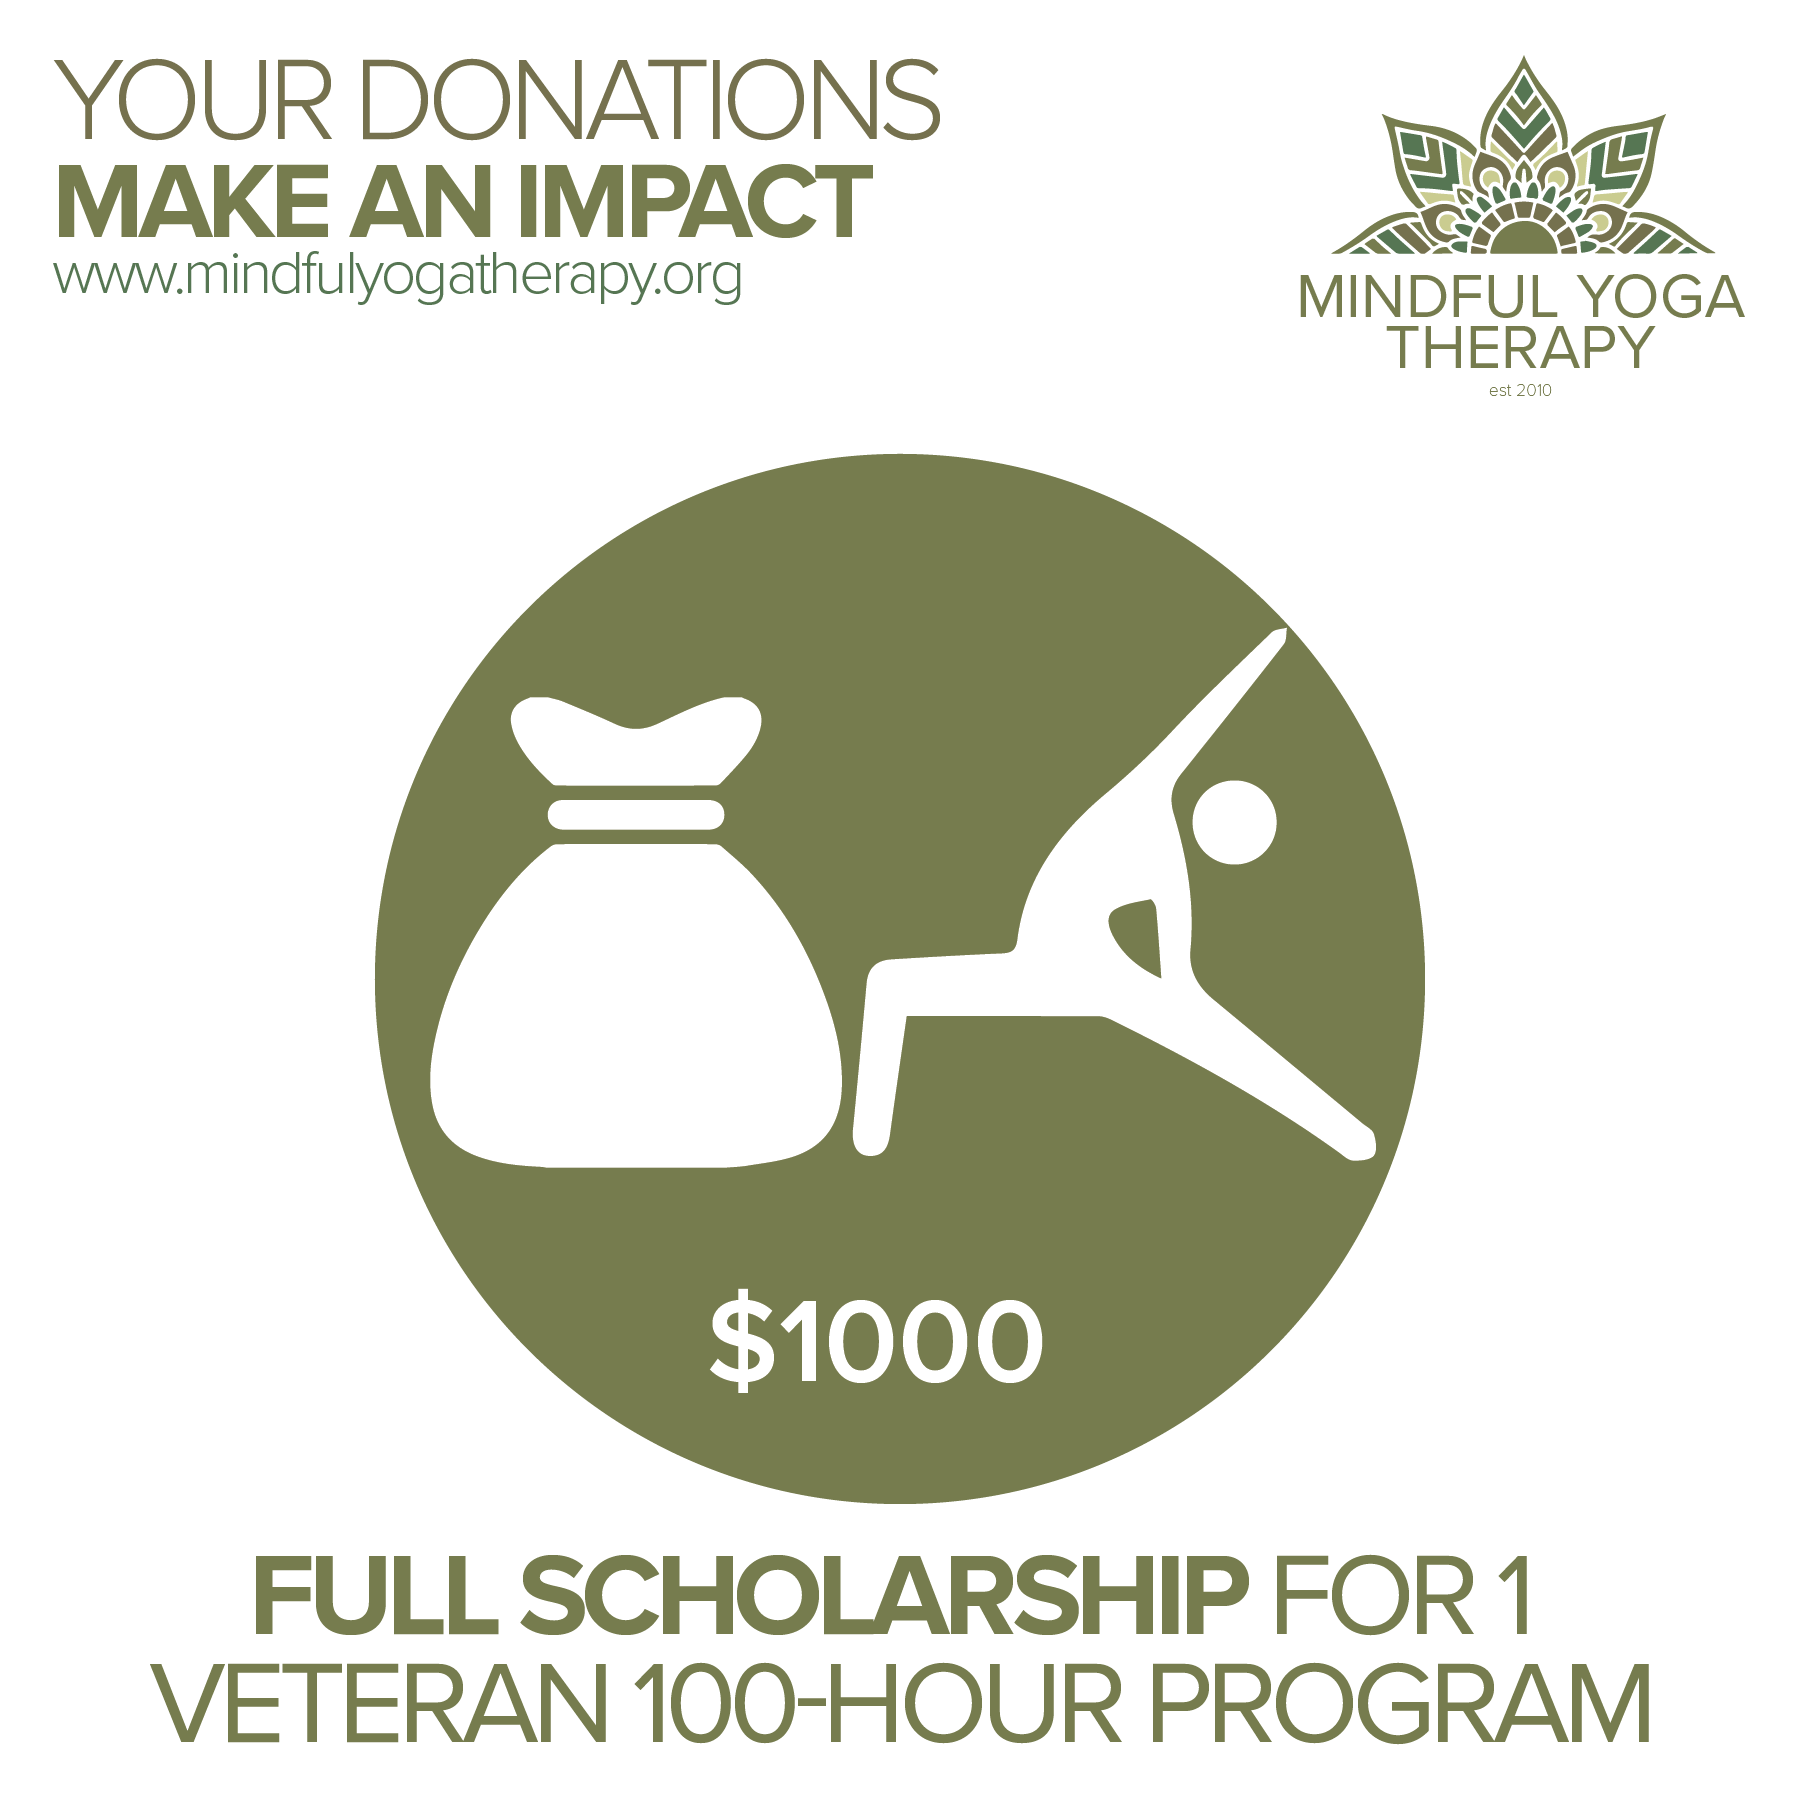 Yoga for Veterans and Service Members $1000 - $1000 can provide a scholarship for one Veteran or spouse to attend our IAYT Approved 100-hour program.